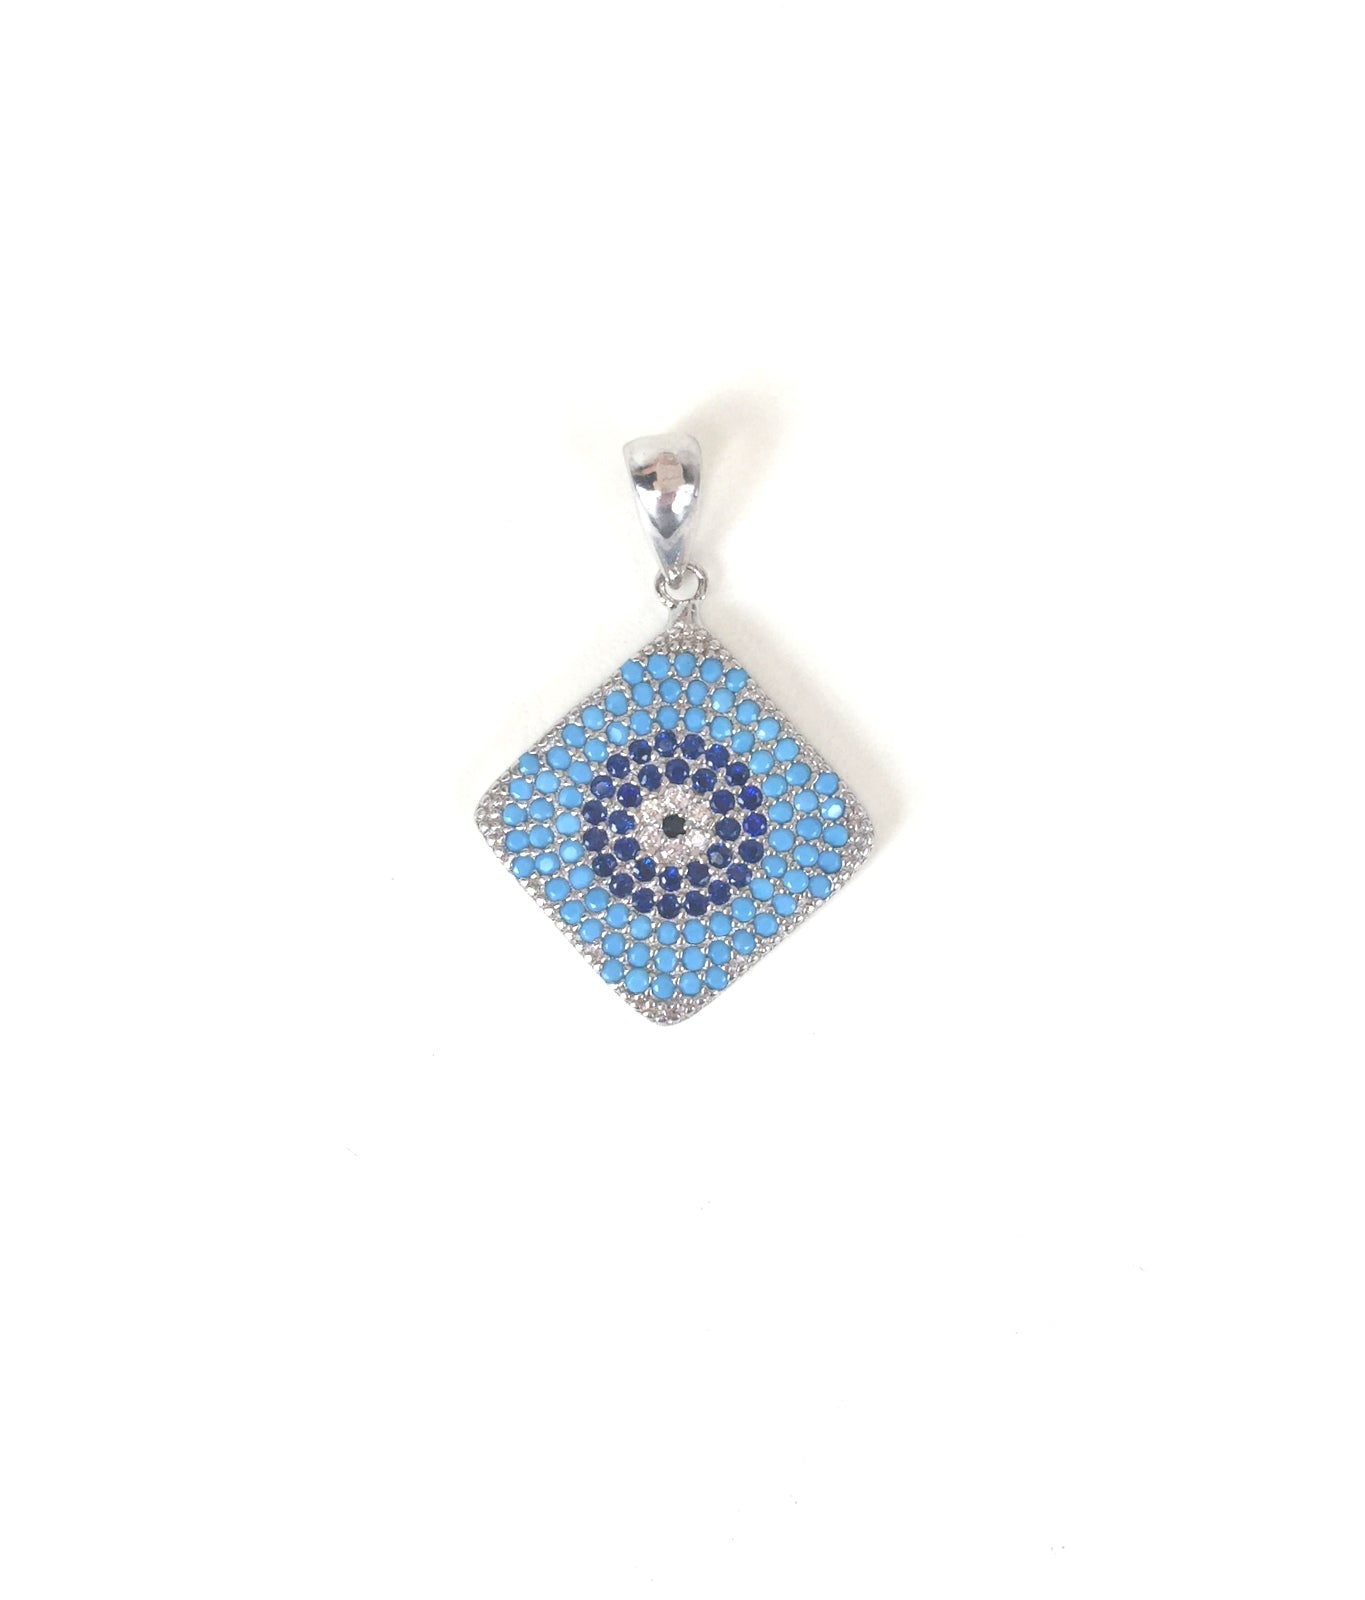 SQUARE TURQUOISE DISK PAVE CZ STERLING SILVER PENDANT